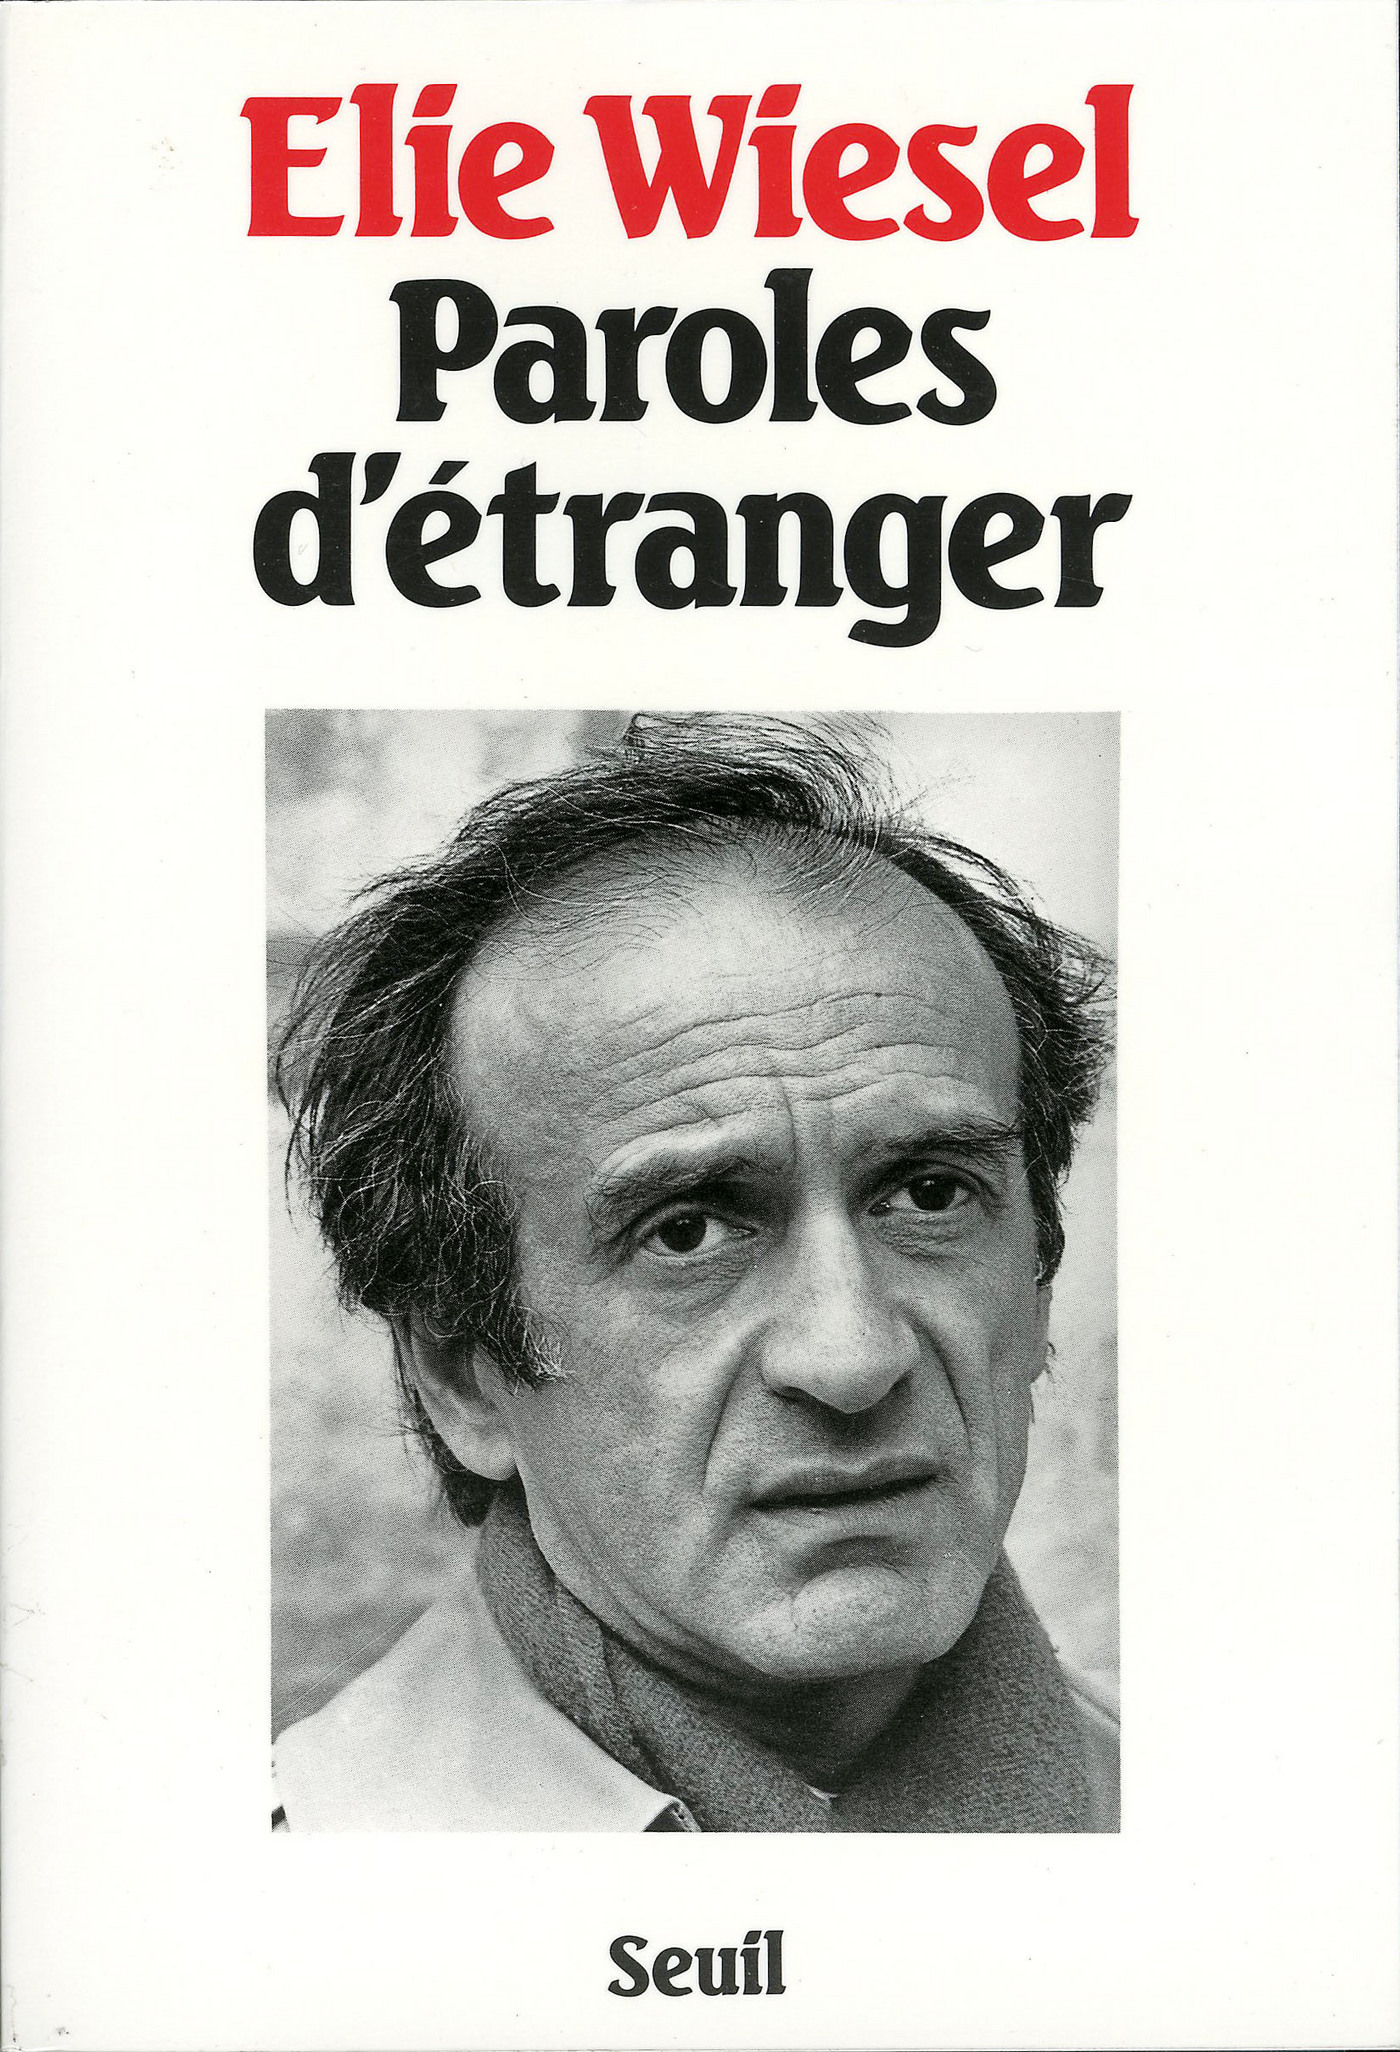 Paroles d'étranger